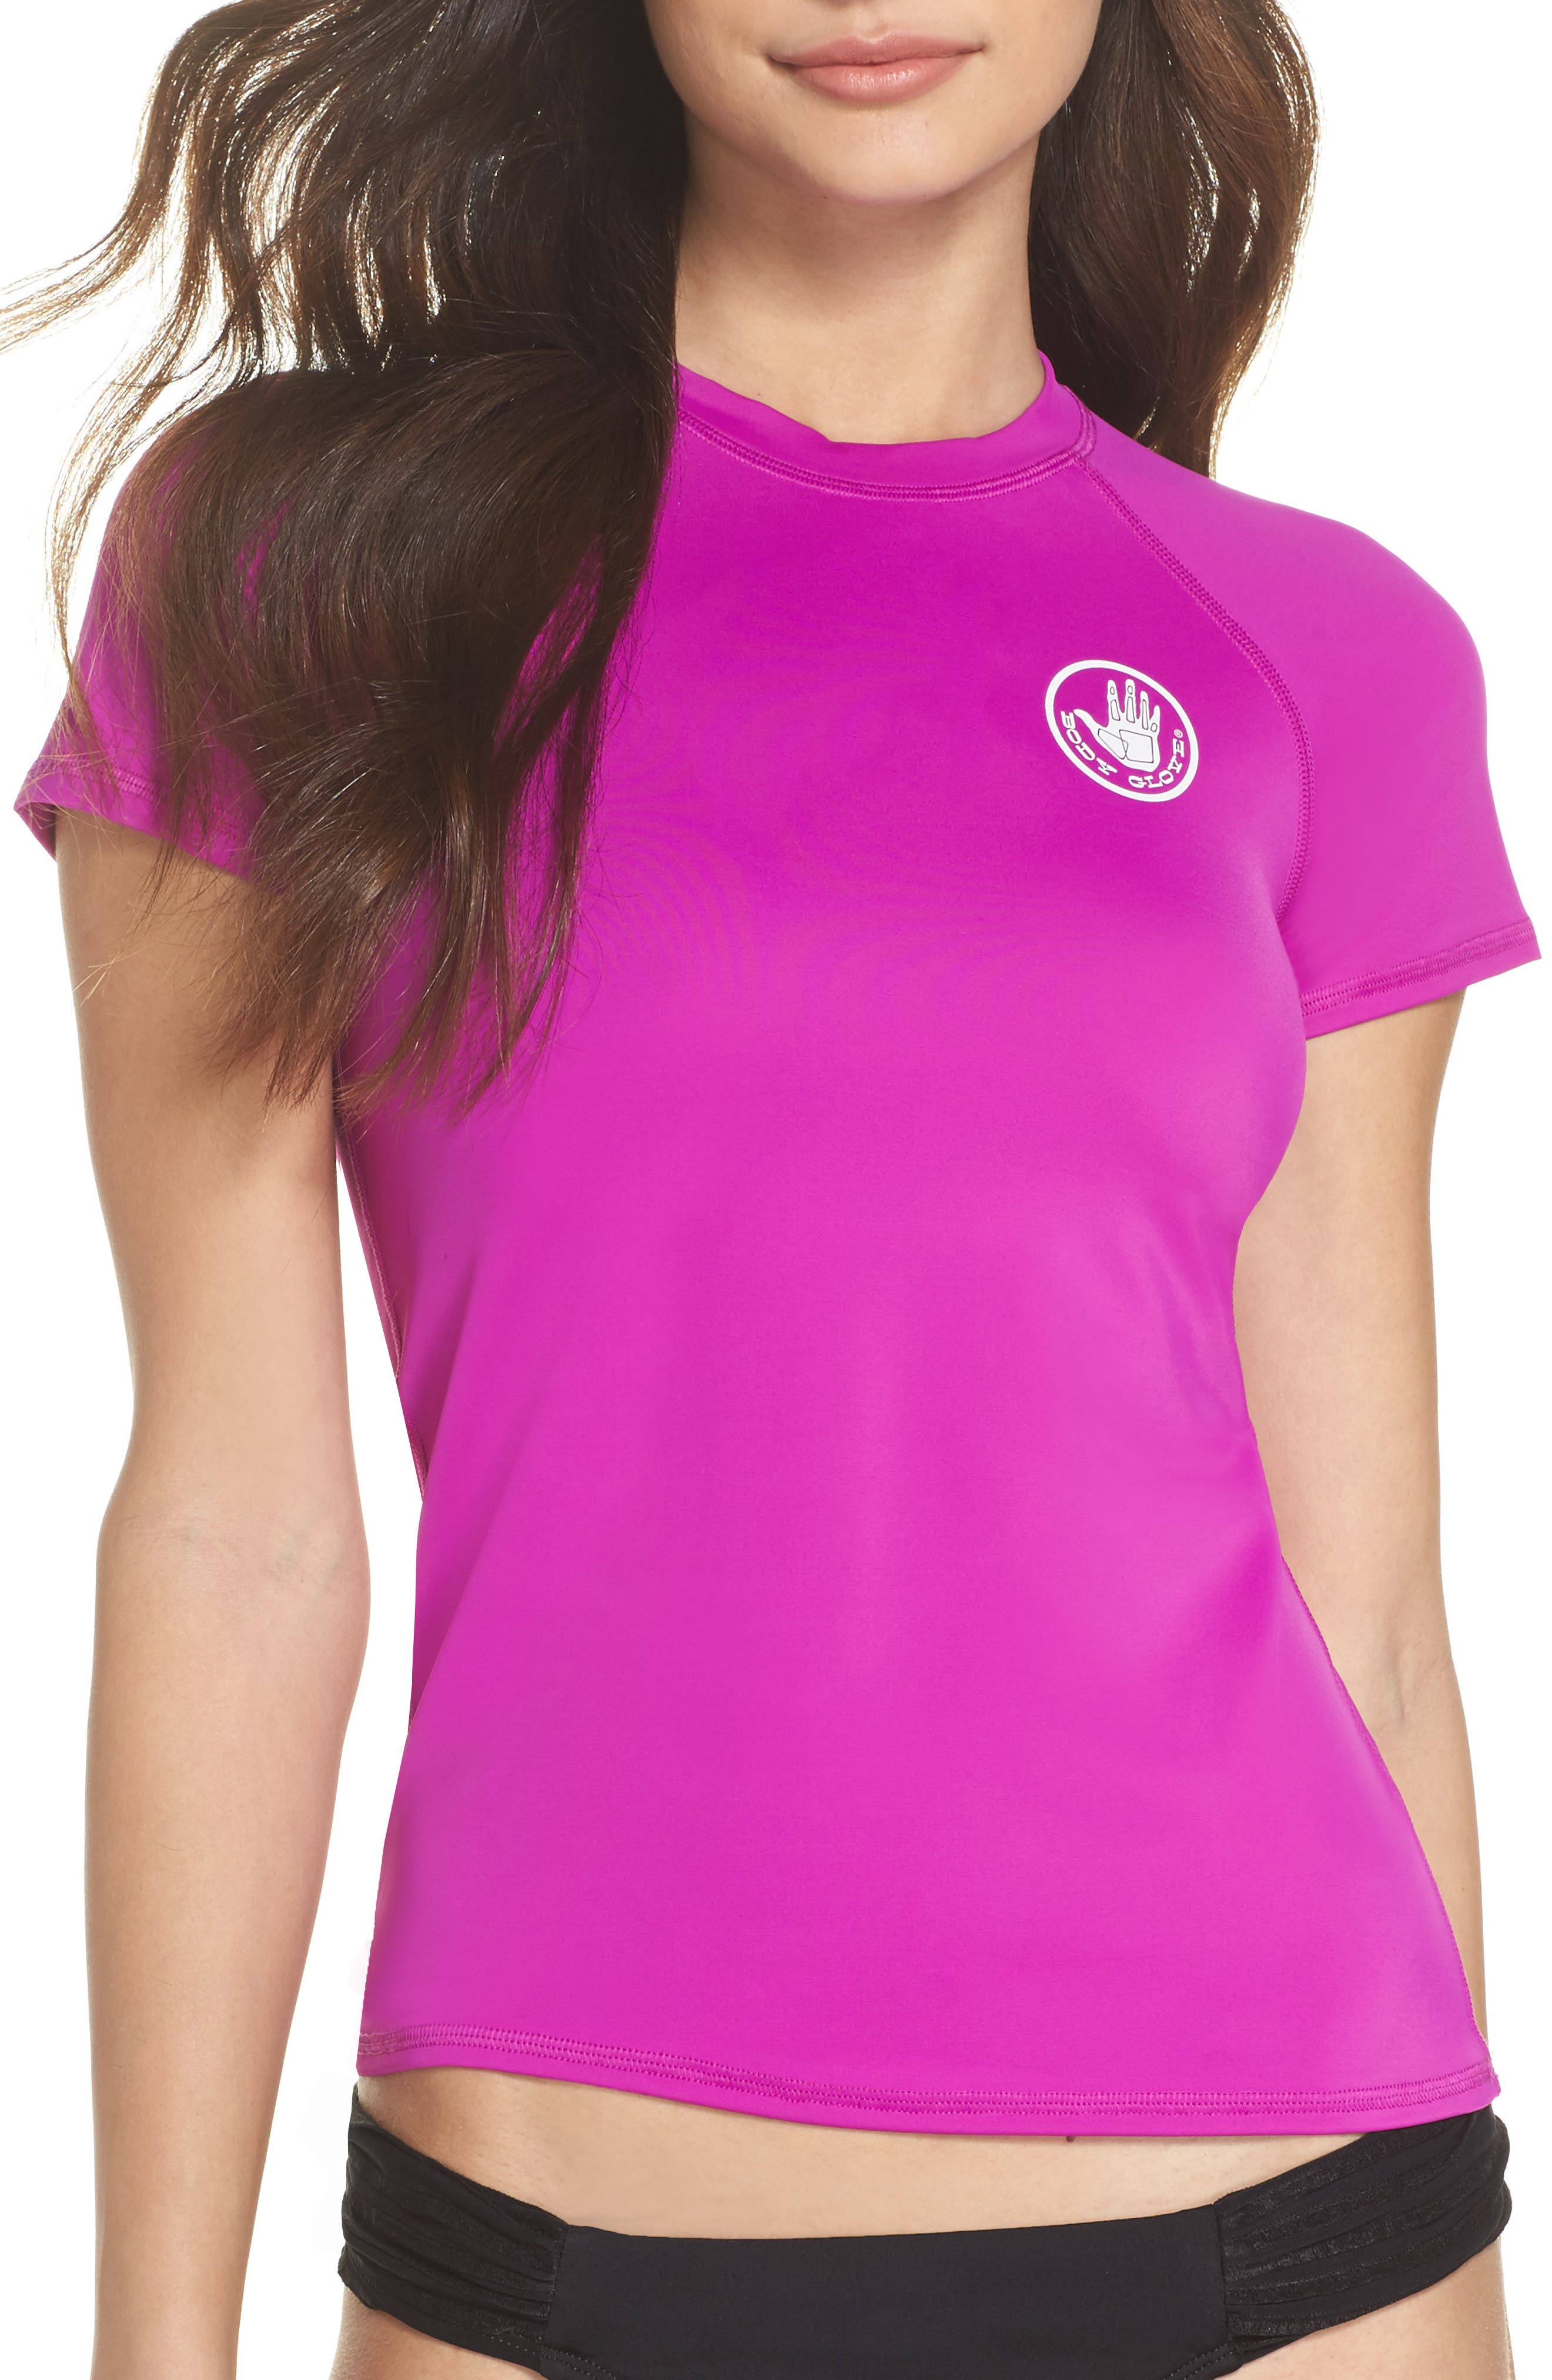 Body Glove 'Smoothies in Motion' Short Sleeve Rashguard